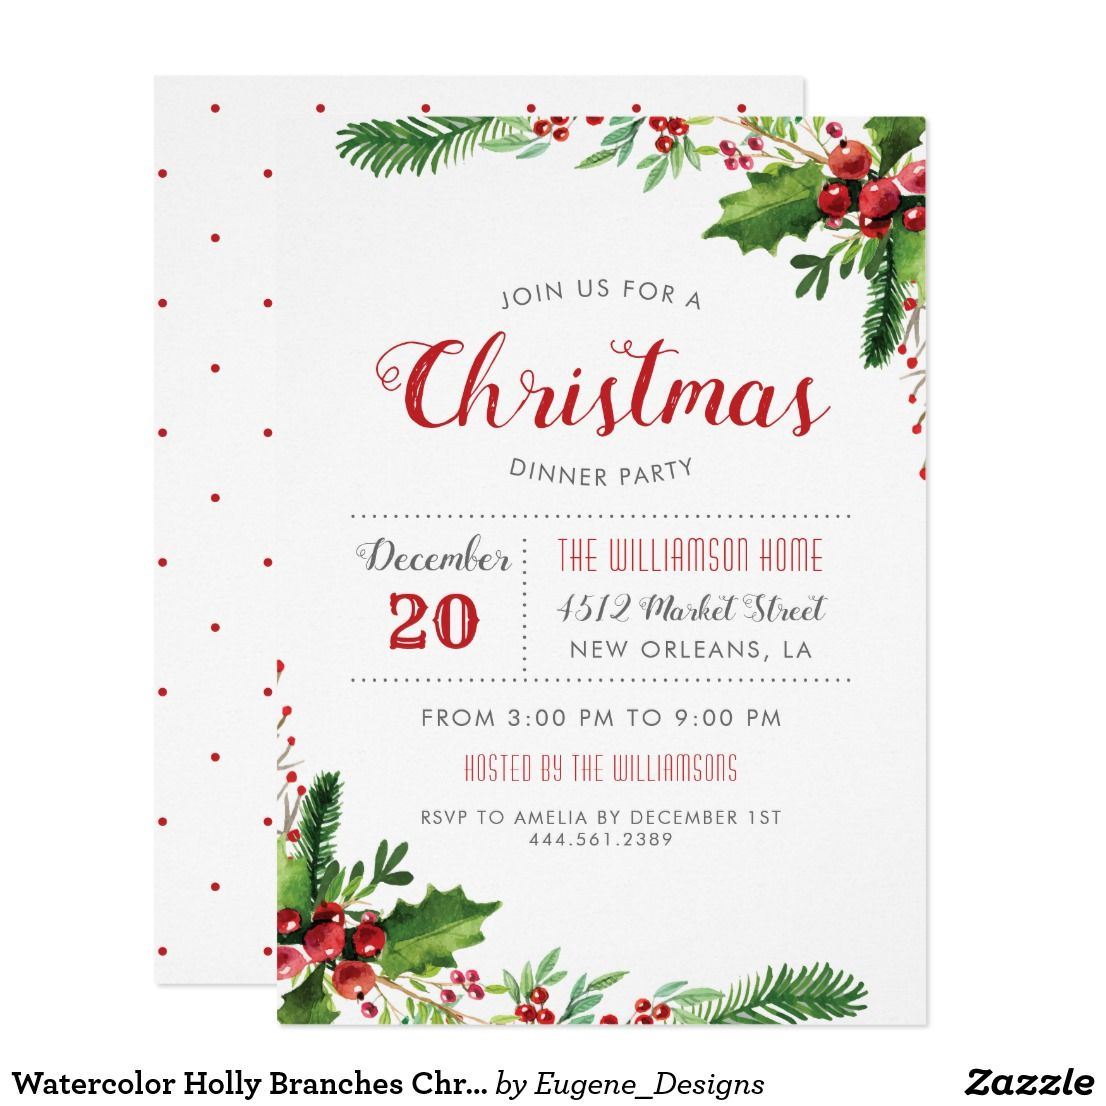 Watercolor Holly Branches Christmas Dinner Party Card | Christmas ...